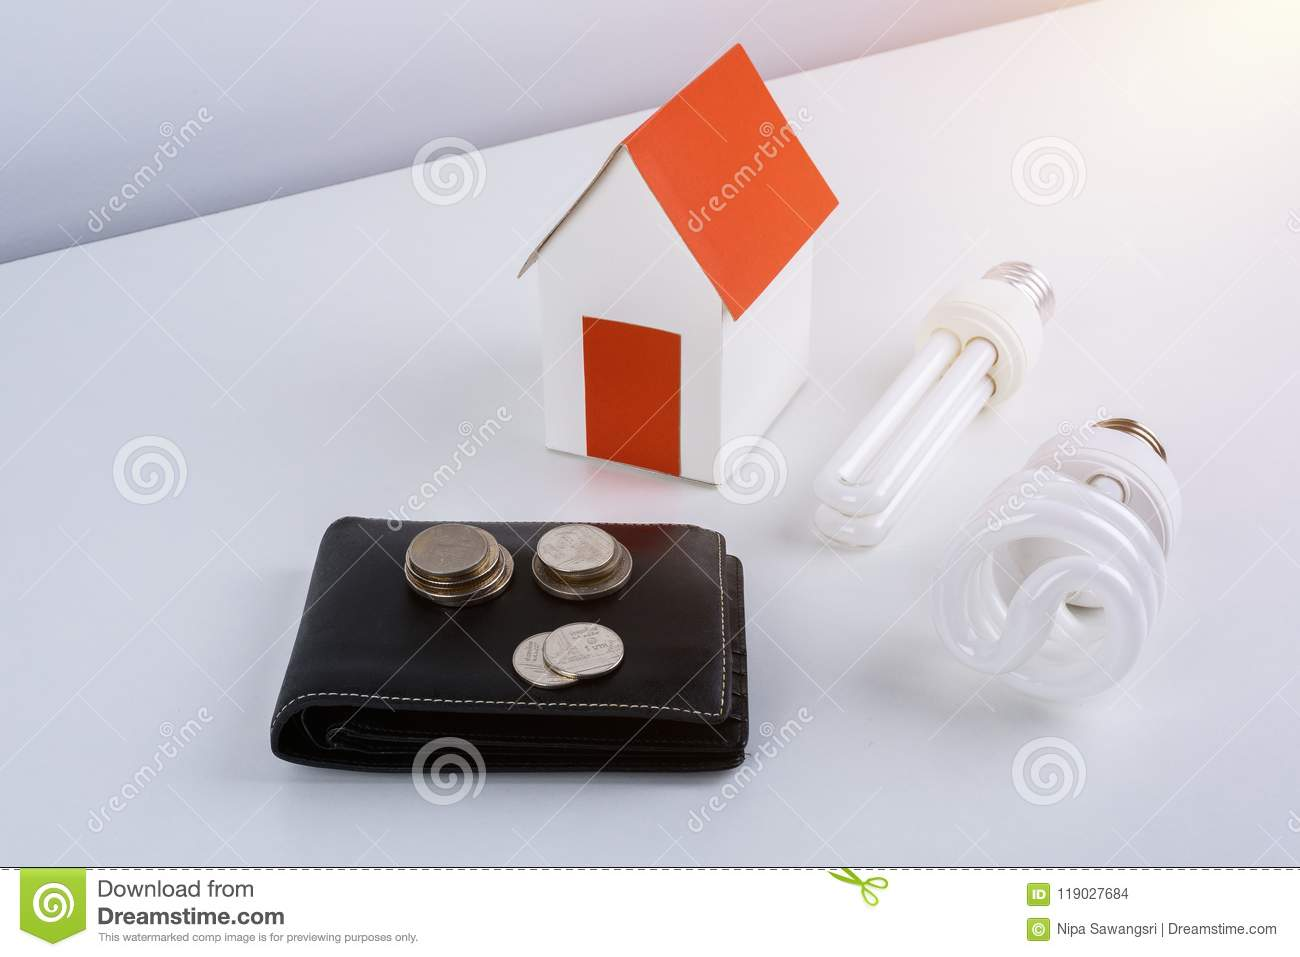 Energy Savings Lamp With Wallet And Coins, Paper House Model. Stock ...